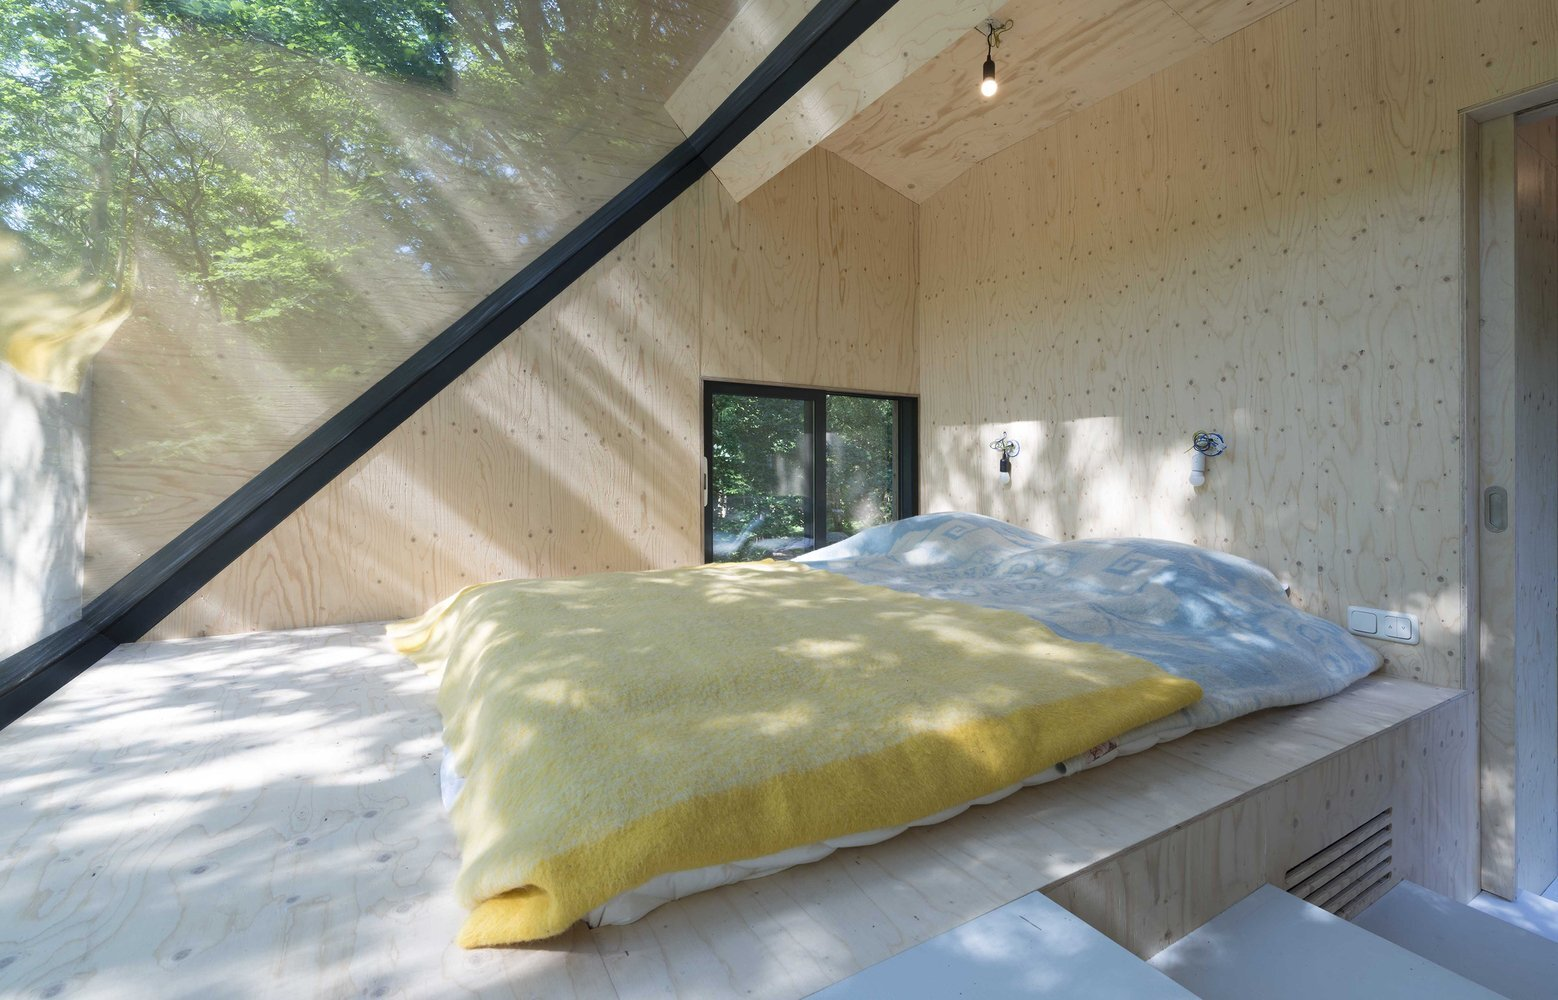 Transformation Forest House - Bloot Architecture - The Netherlands - Bedroom - Humble Homes